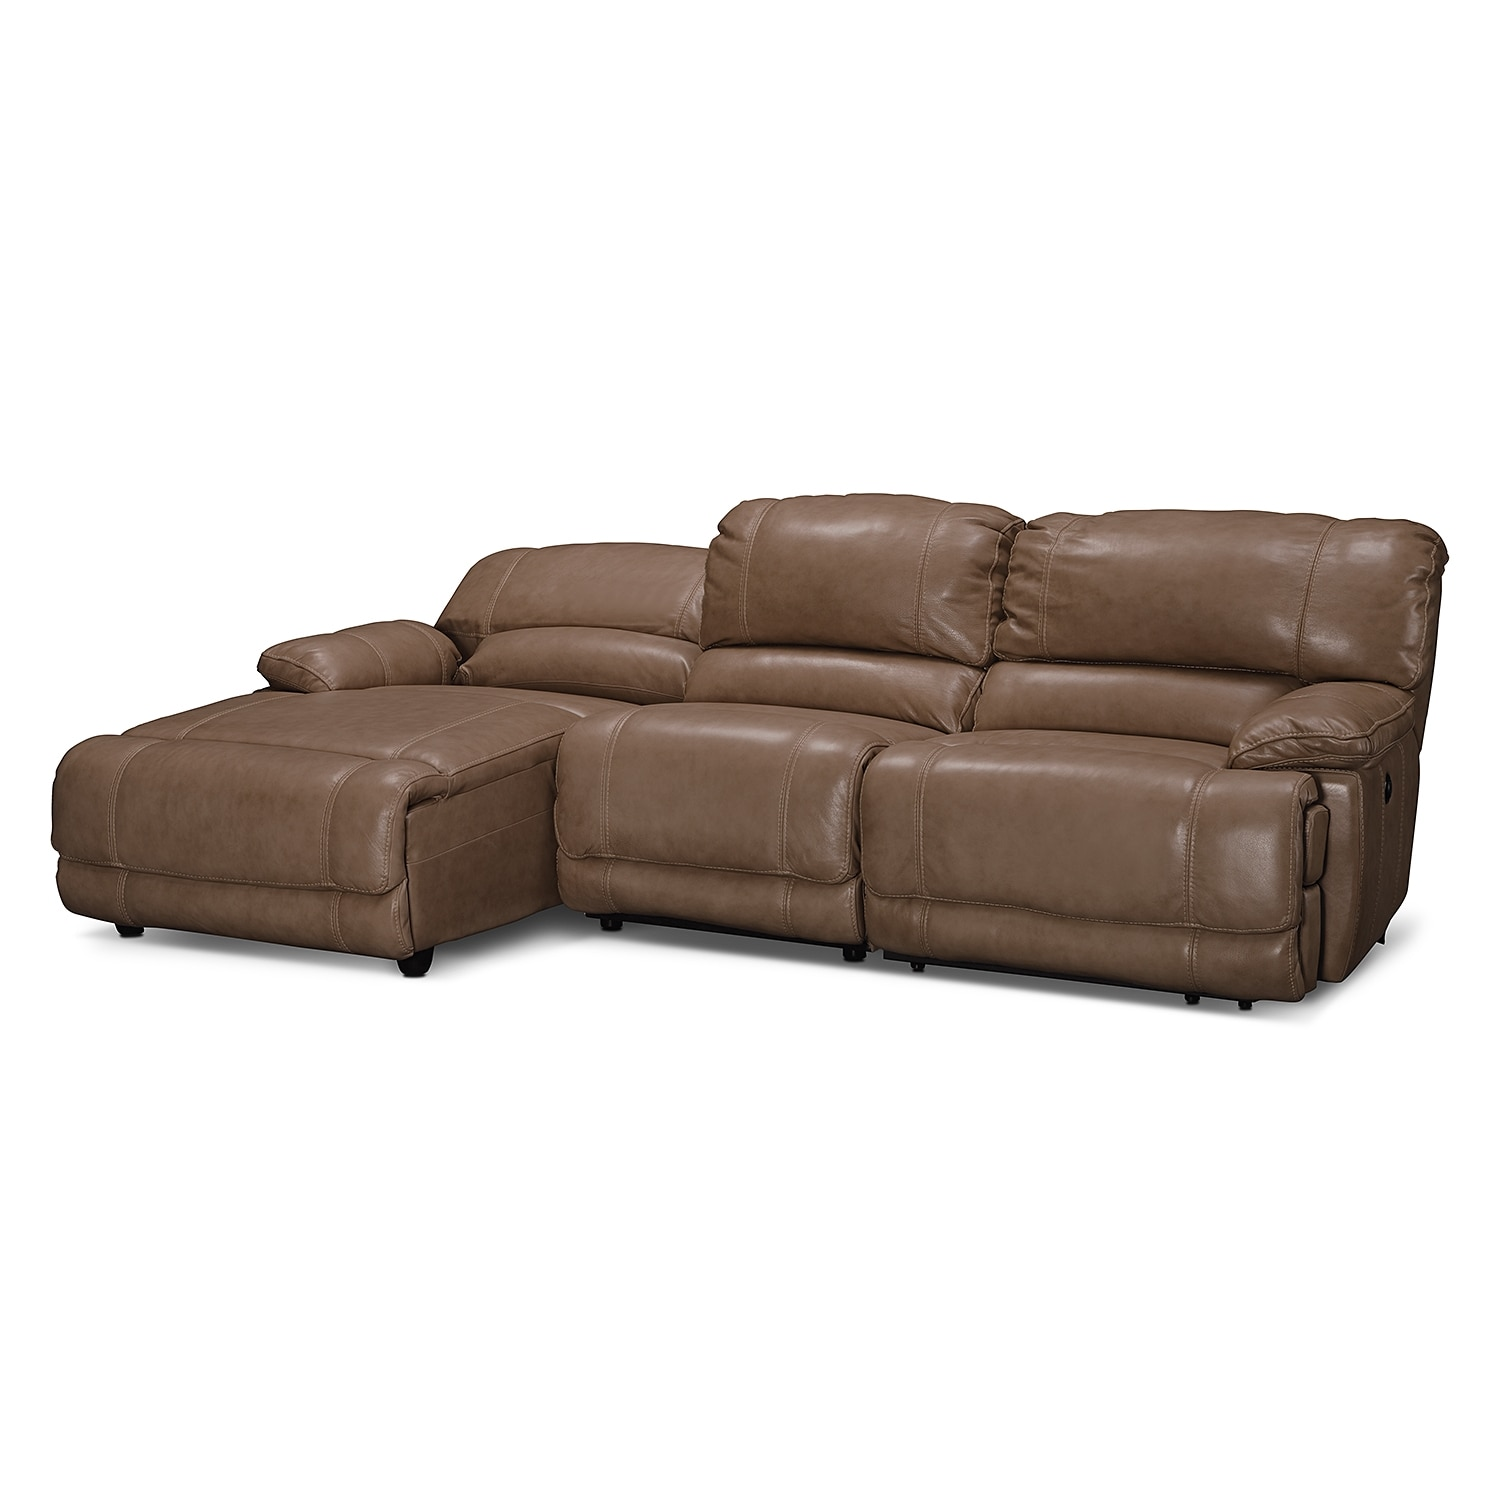 3 pc sectional sofa with recliners shallow depth st malo piece power reclining left